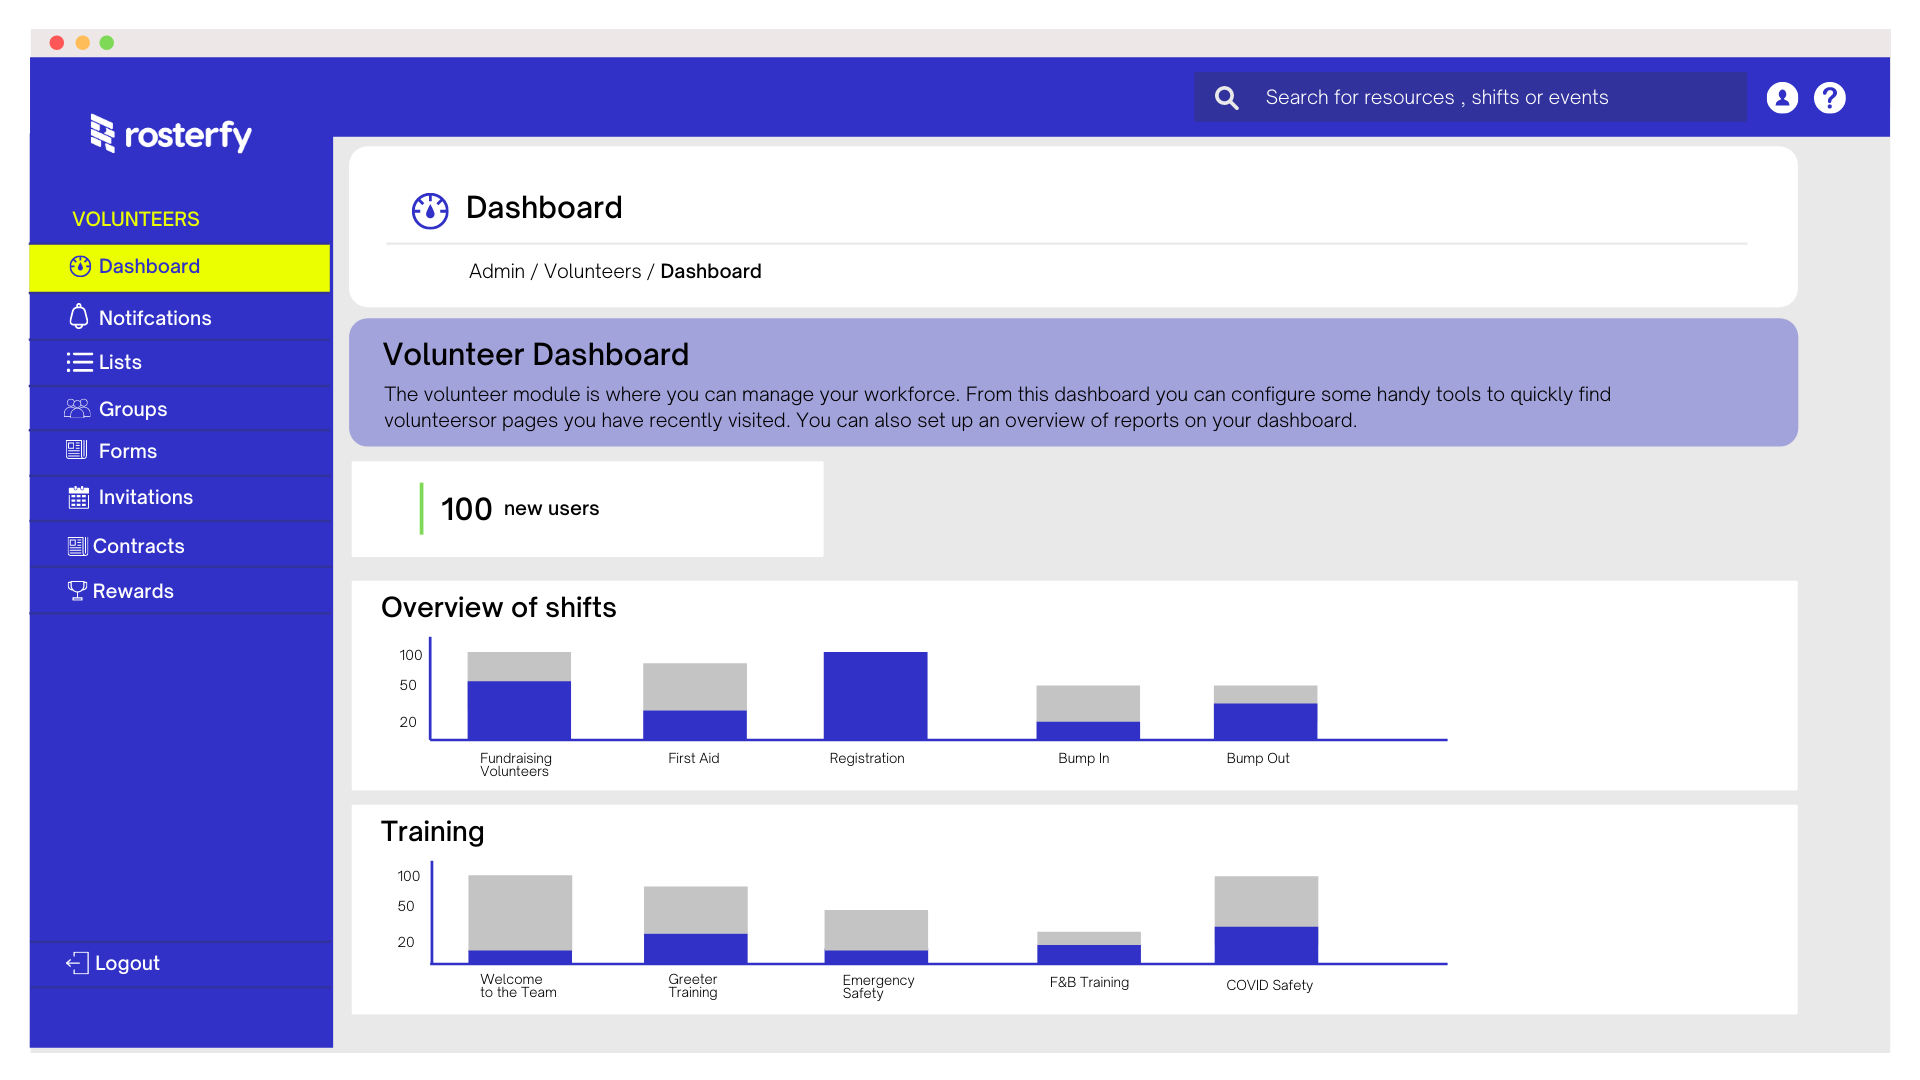 Reporting & Dashboards